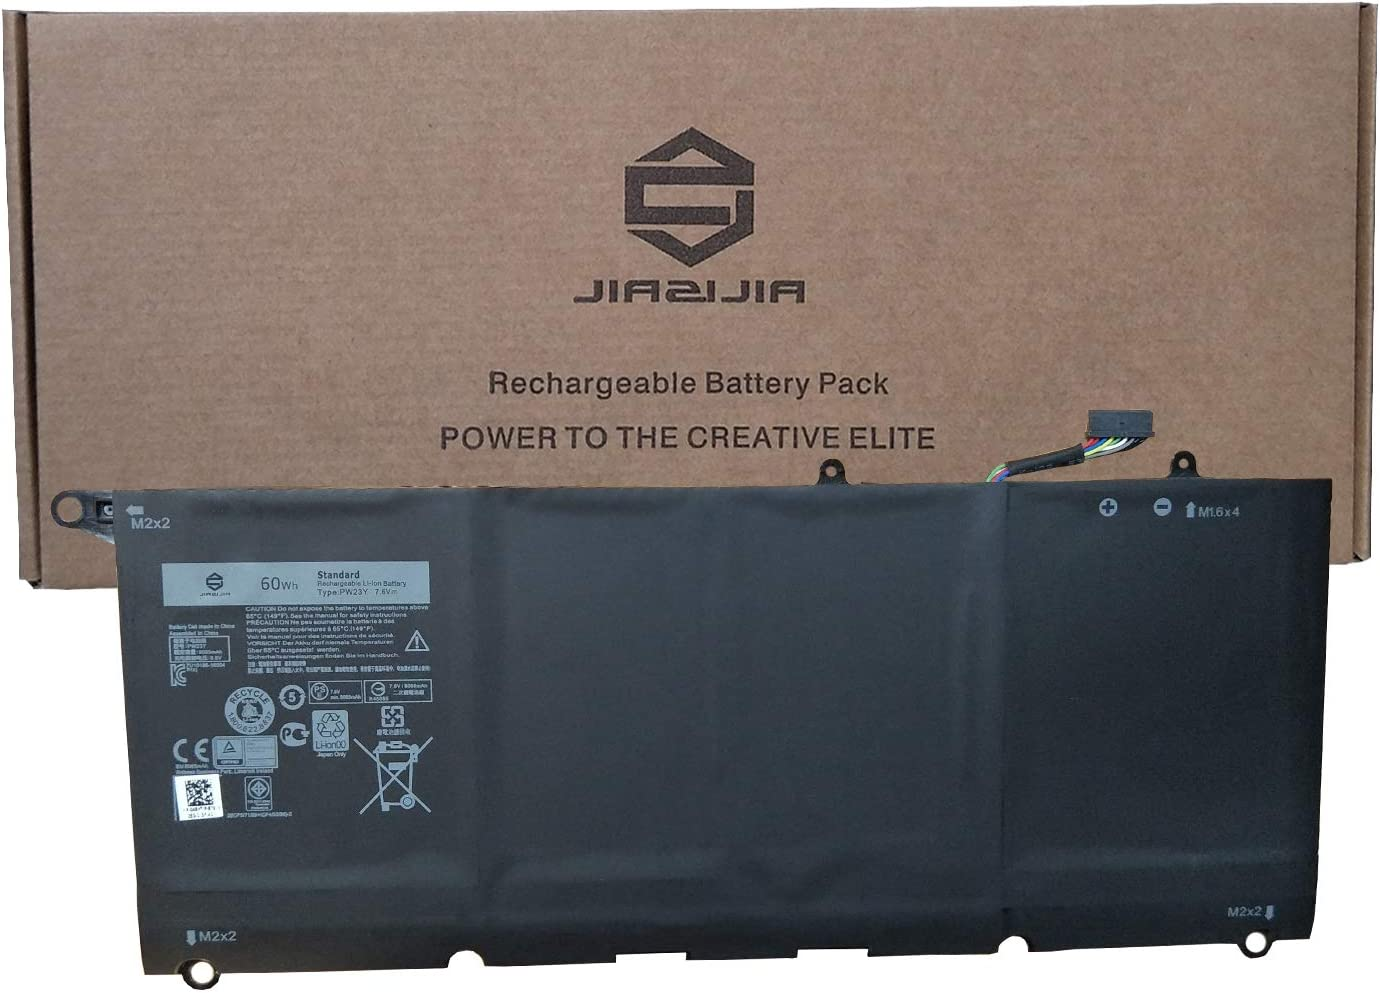 JIAZIJIA PW23Y Laptop Battery Replacement for Dell XPS 13 9360 XPS 13 2017 Series Notebook RNP72 TP1GT Black 7.6V 60Wh 8085mAh 4-Cell